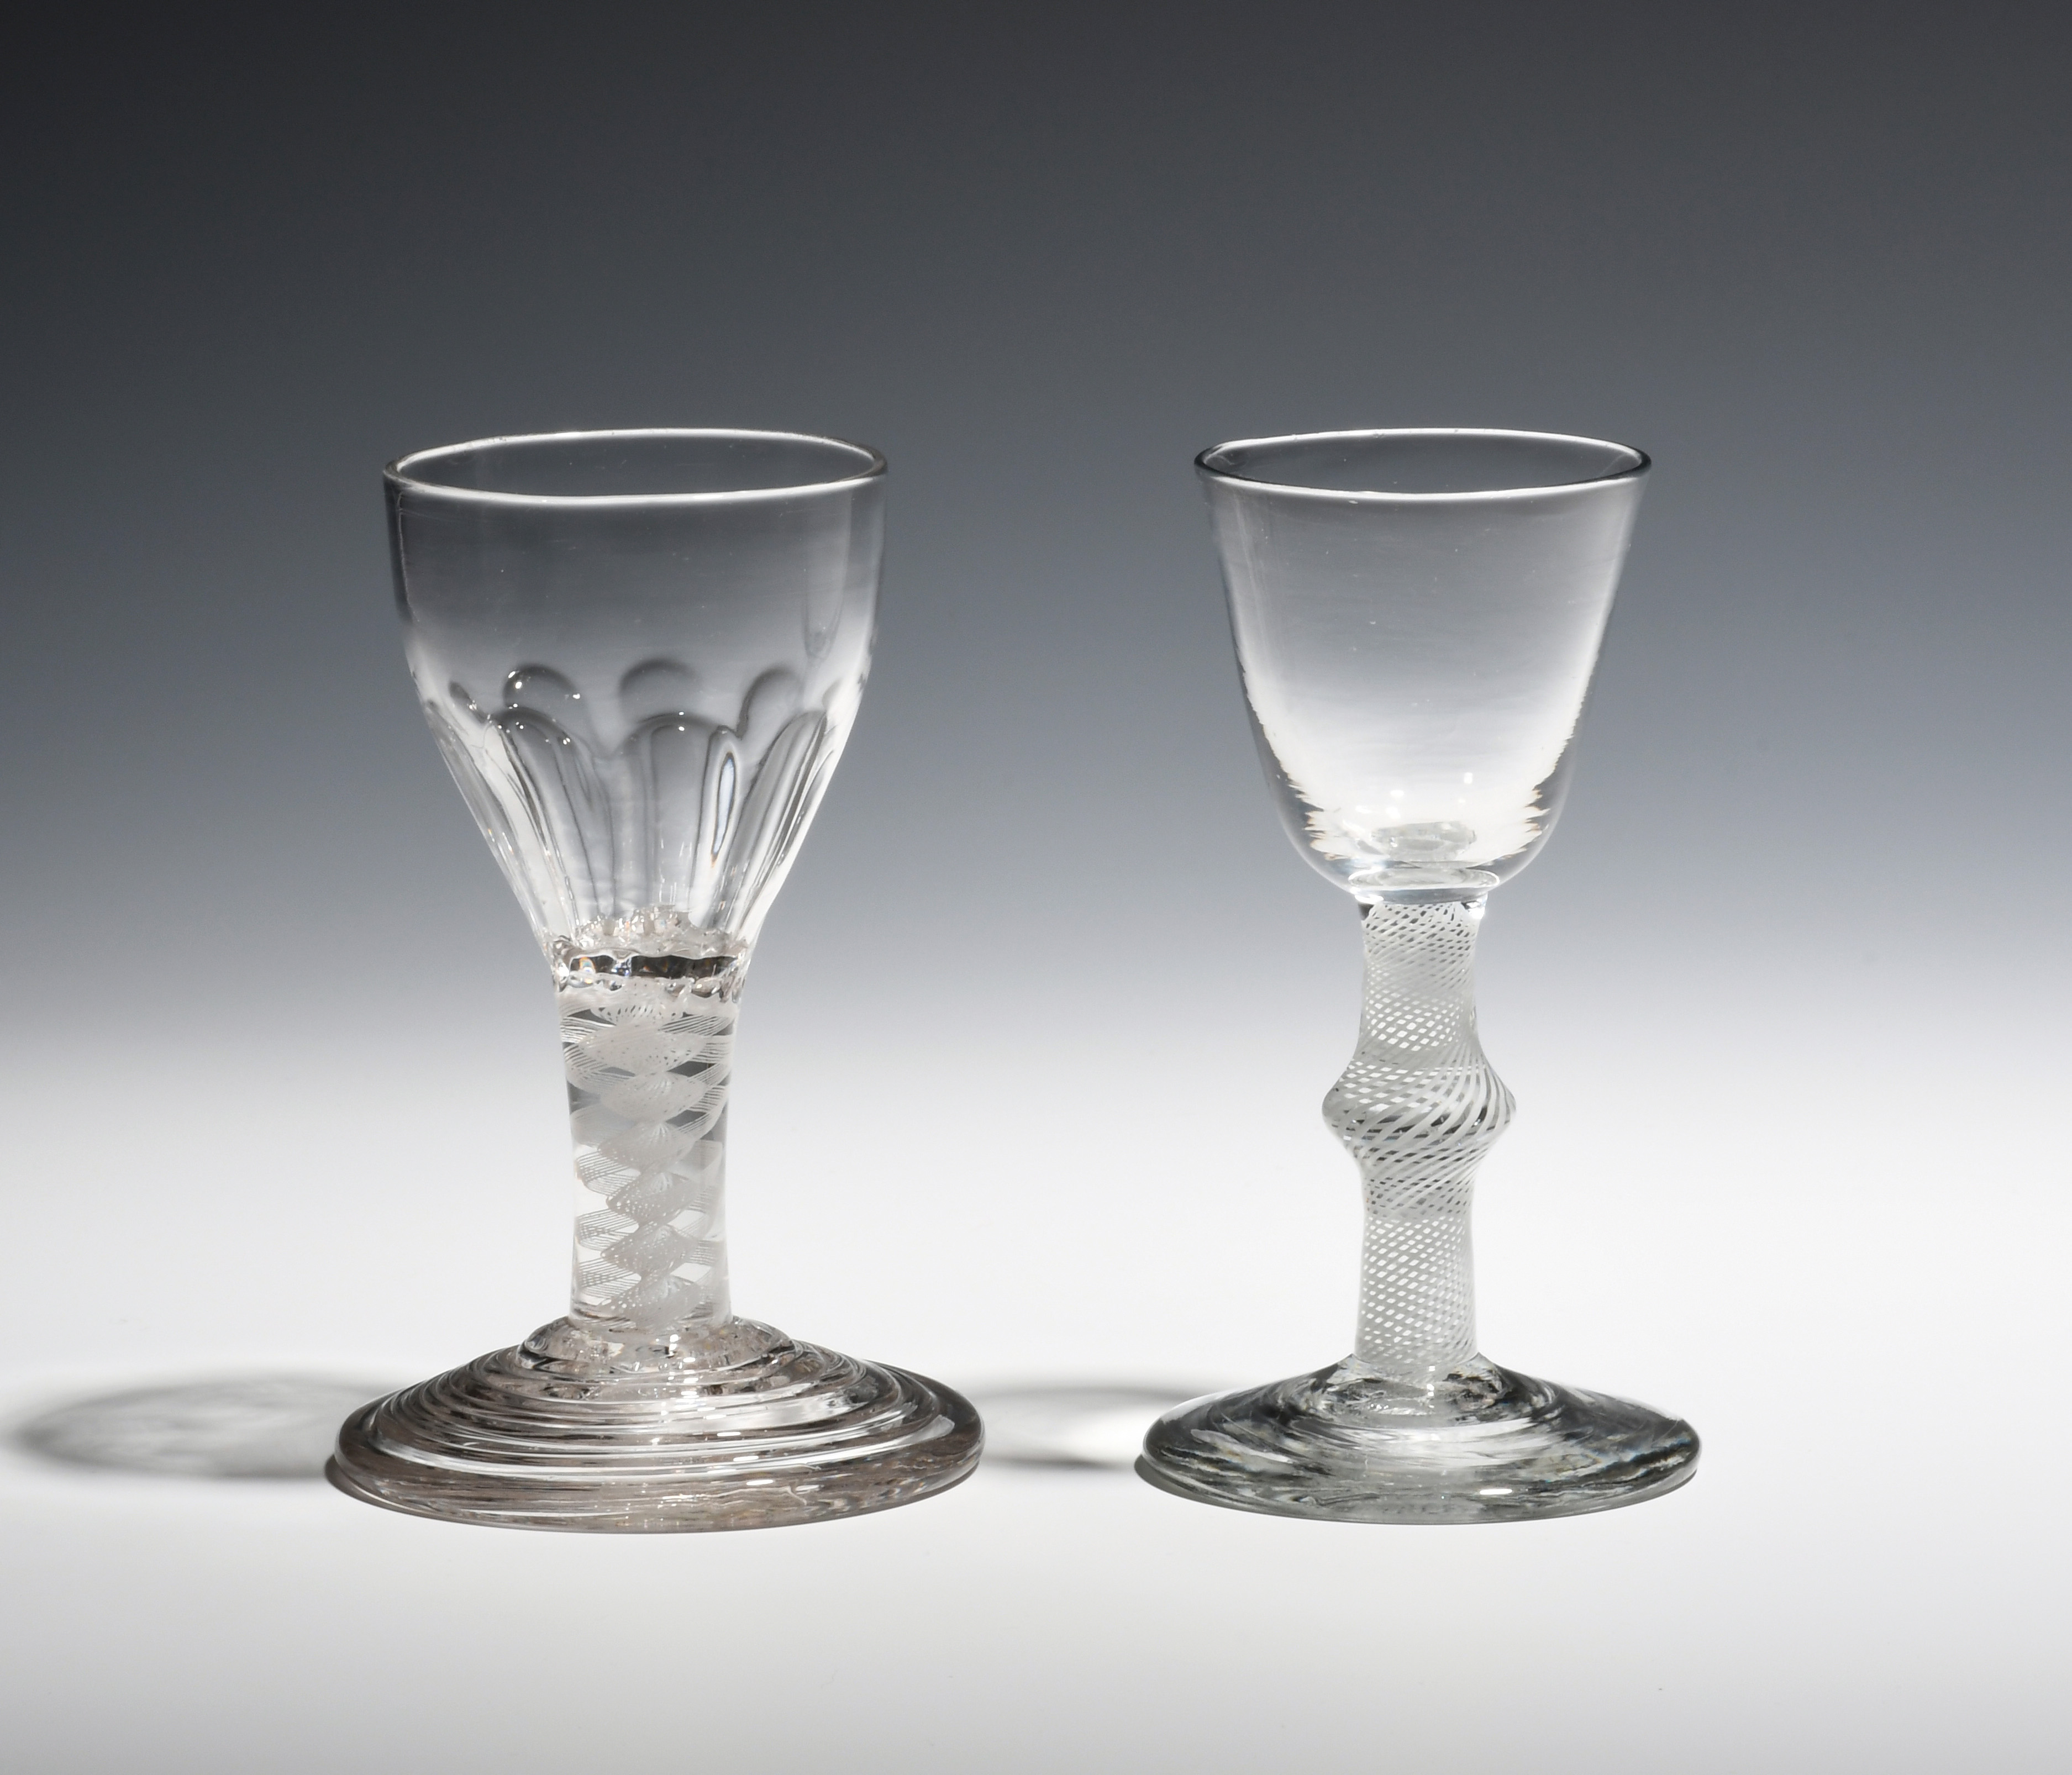 A small wine glass and a dram glass c.1760-70, the wine with a round funnel bowl on an opaque